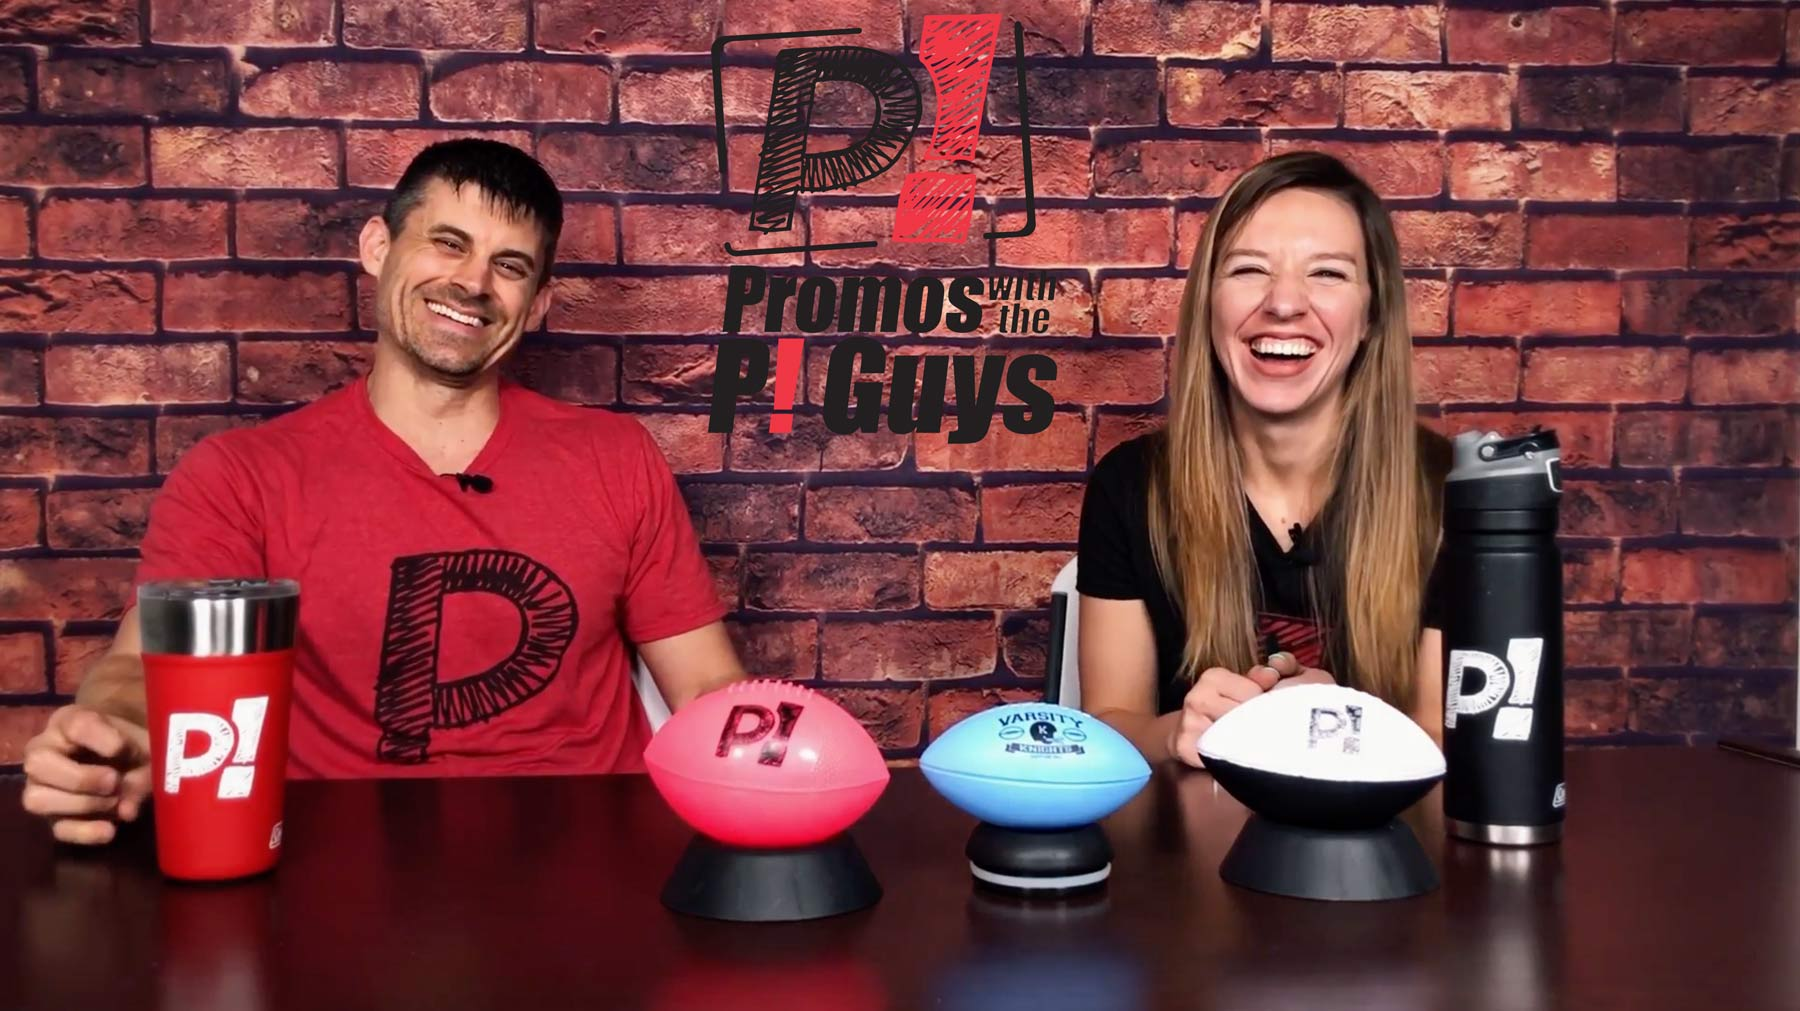 Promos With the P! Guys – Episode 31 – Custom Mini Footballs